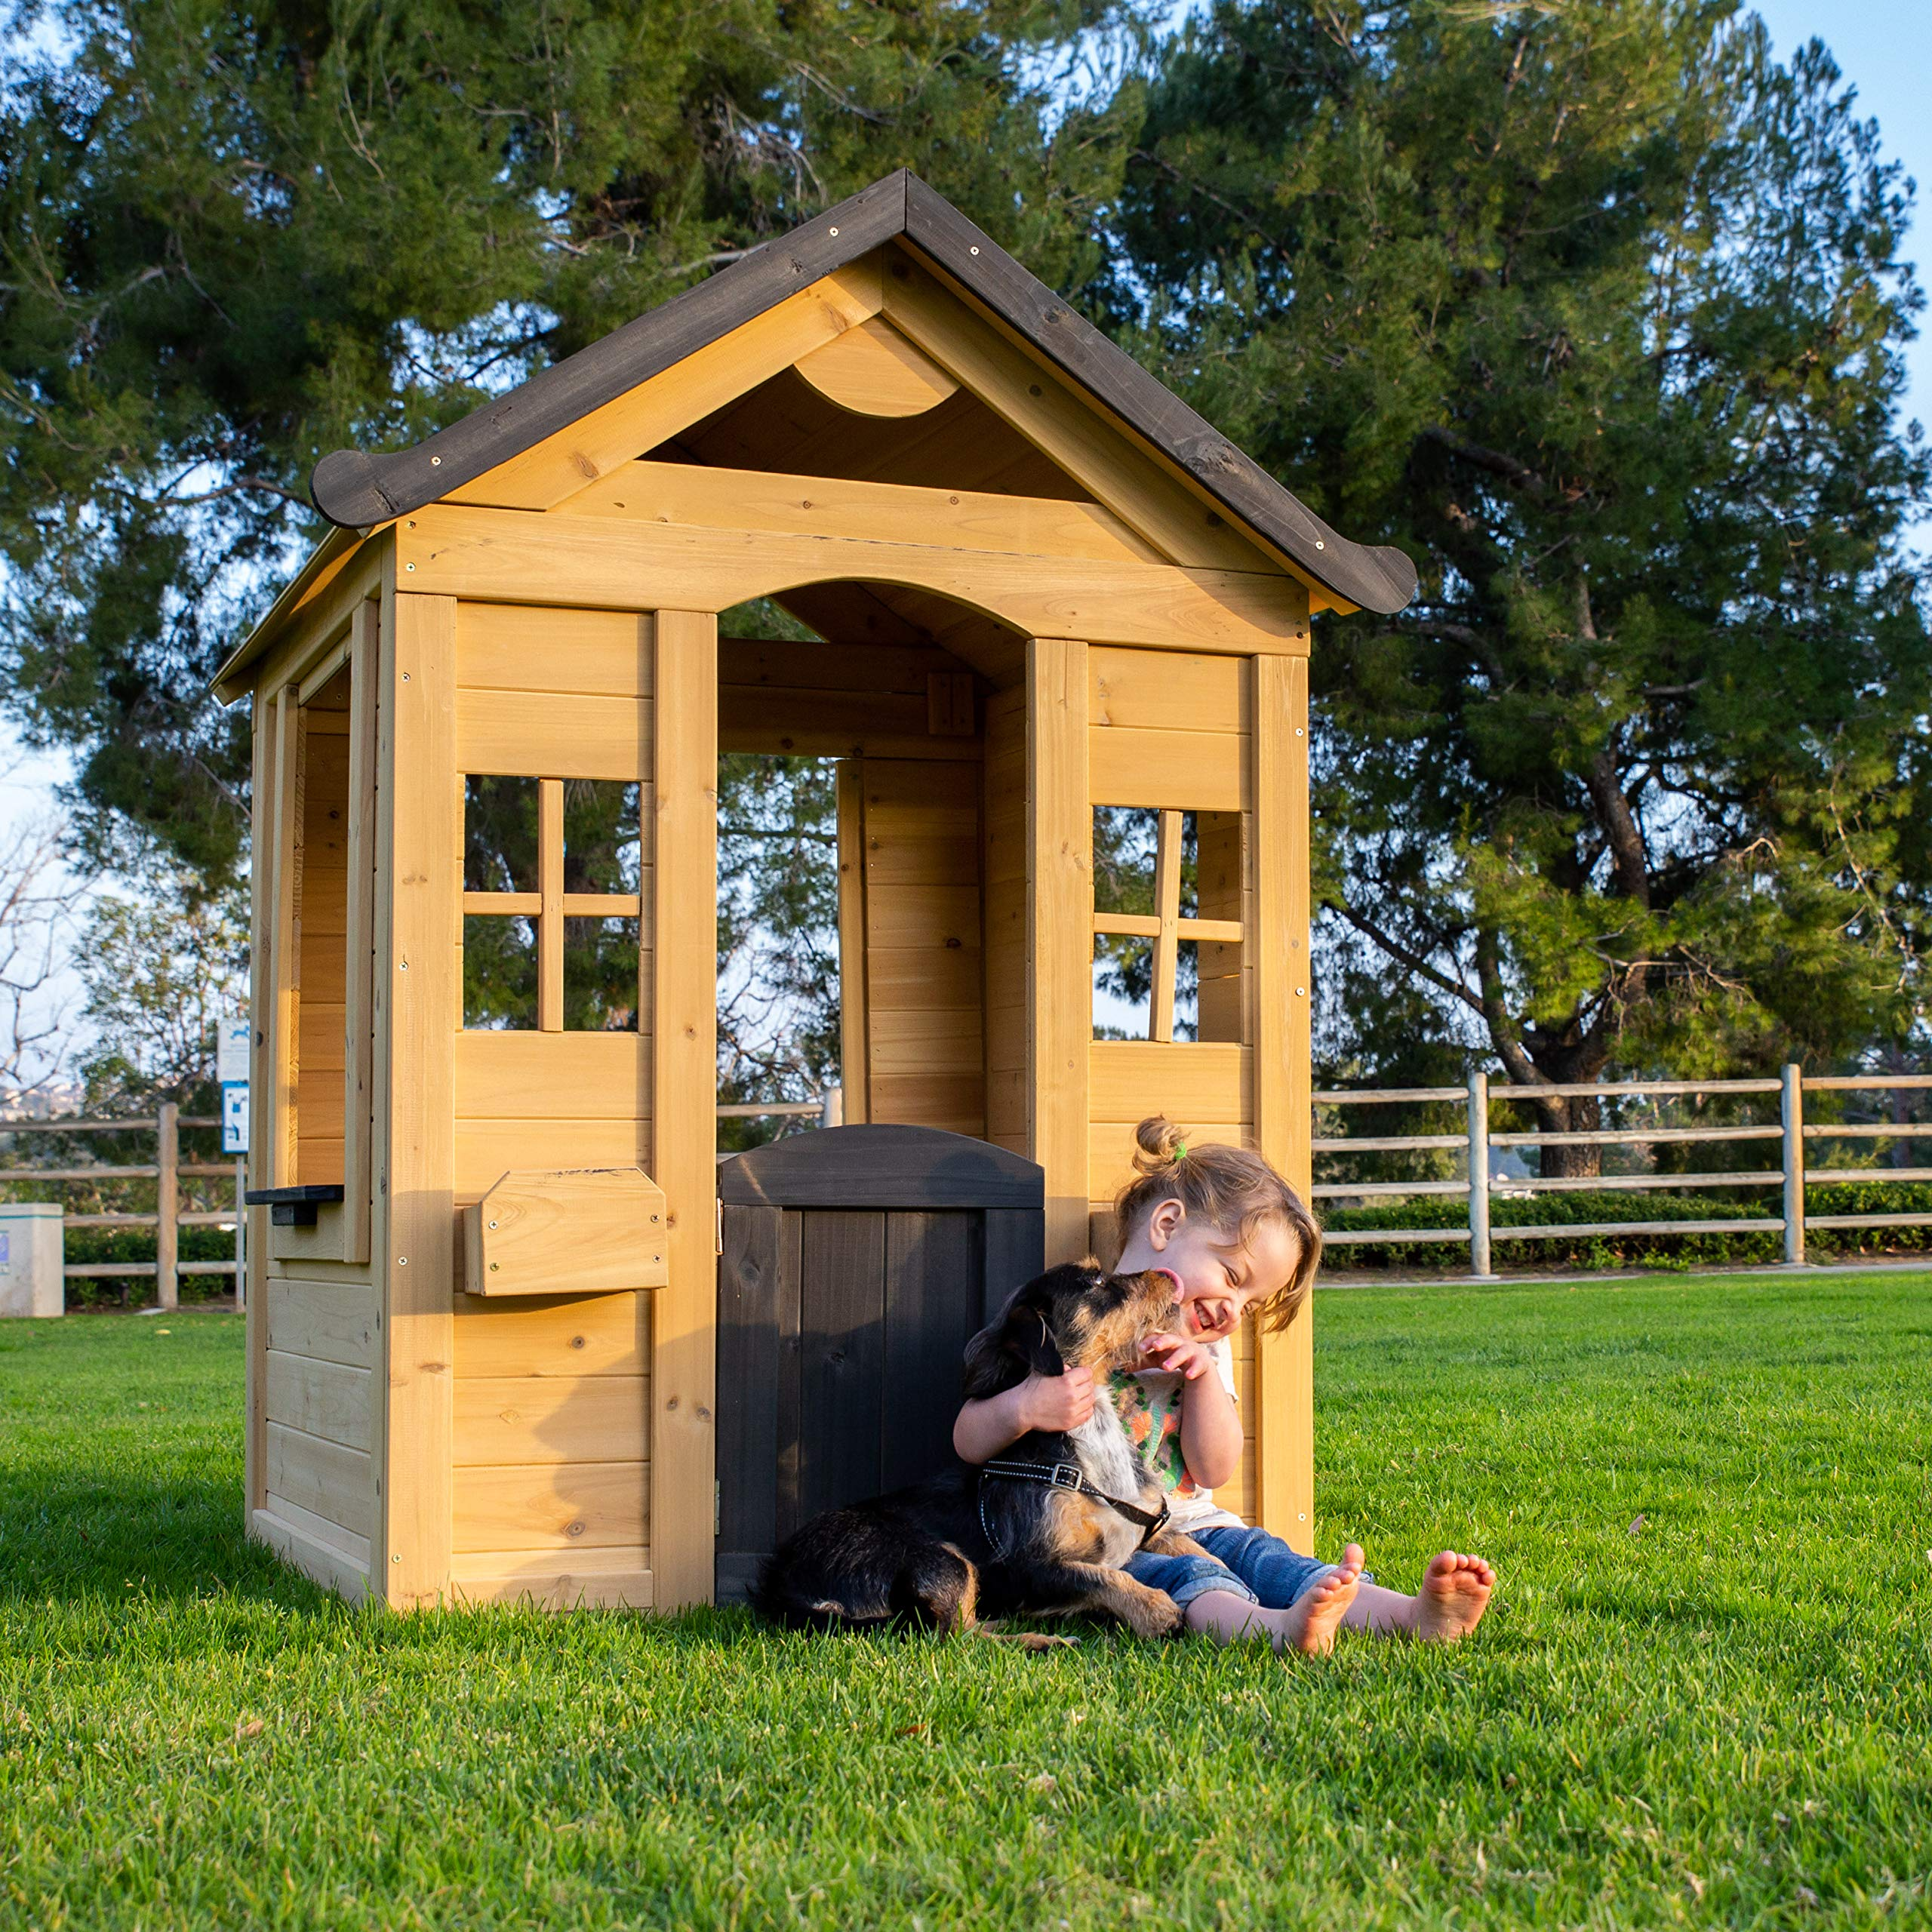 Be Mindful | Solid Wood Outdoor Playhouse in Natural Finish by Be Mindful